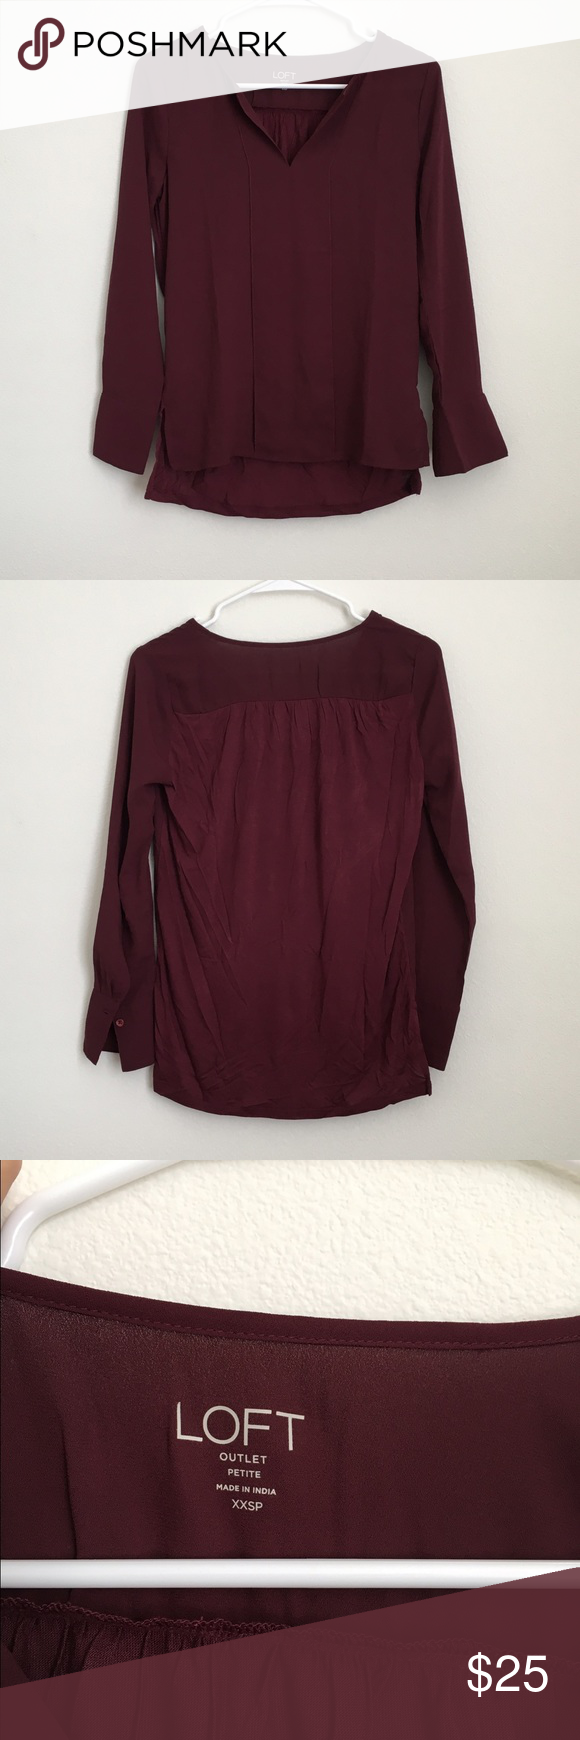 Maroon V-neck Shirt Maroon Bence shirt from Loft LOFT Tops Blouses